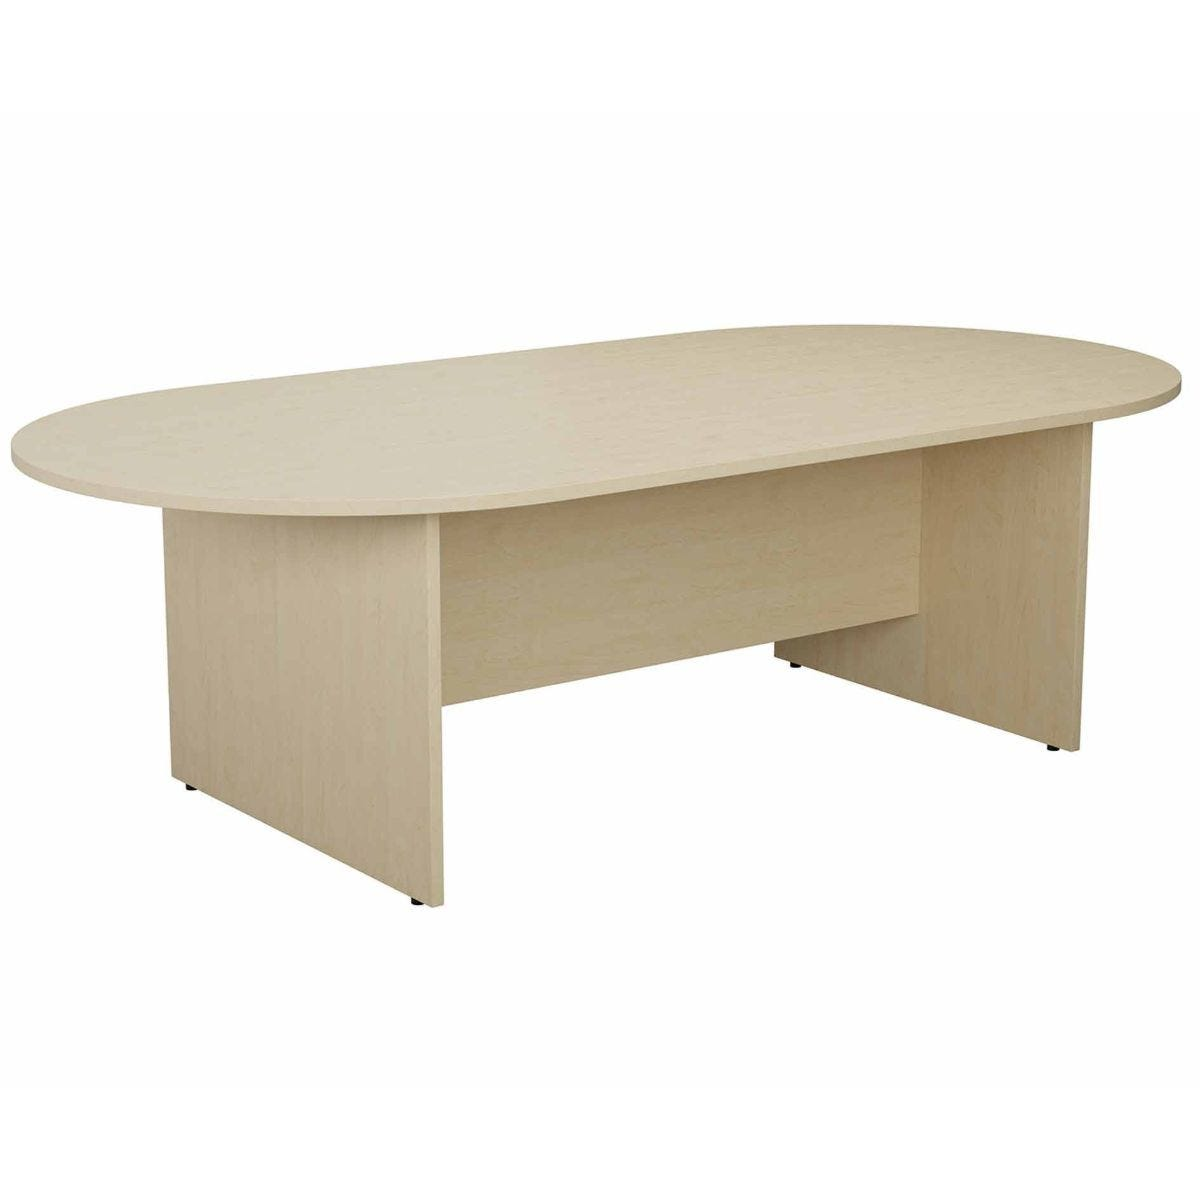 TC Office Long D-End Boardroom Table 2400mm Maple